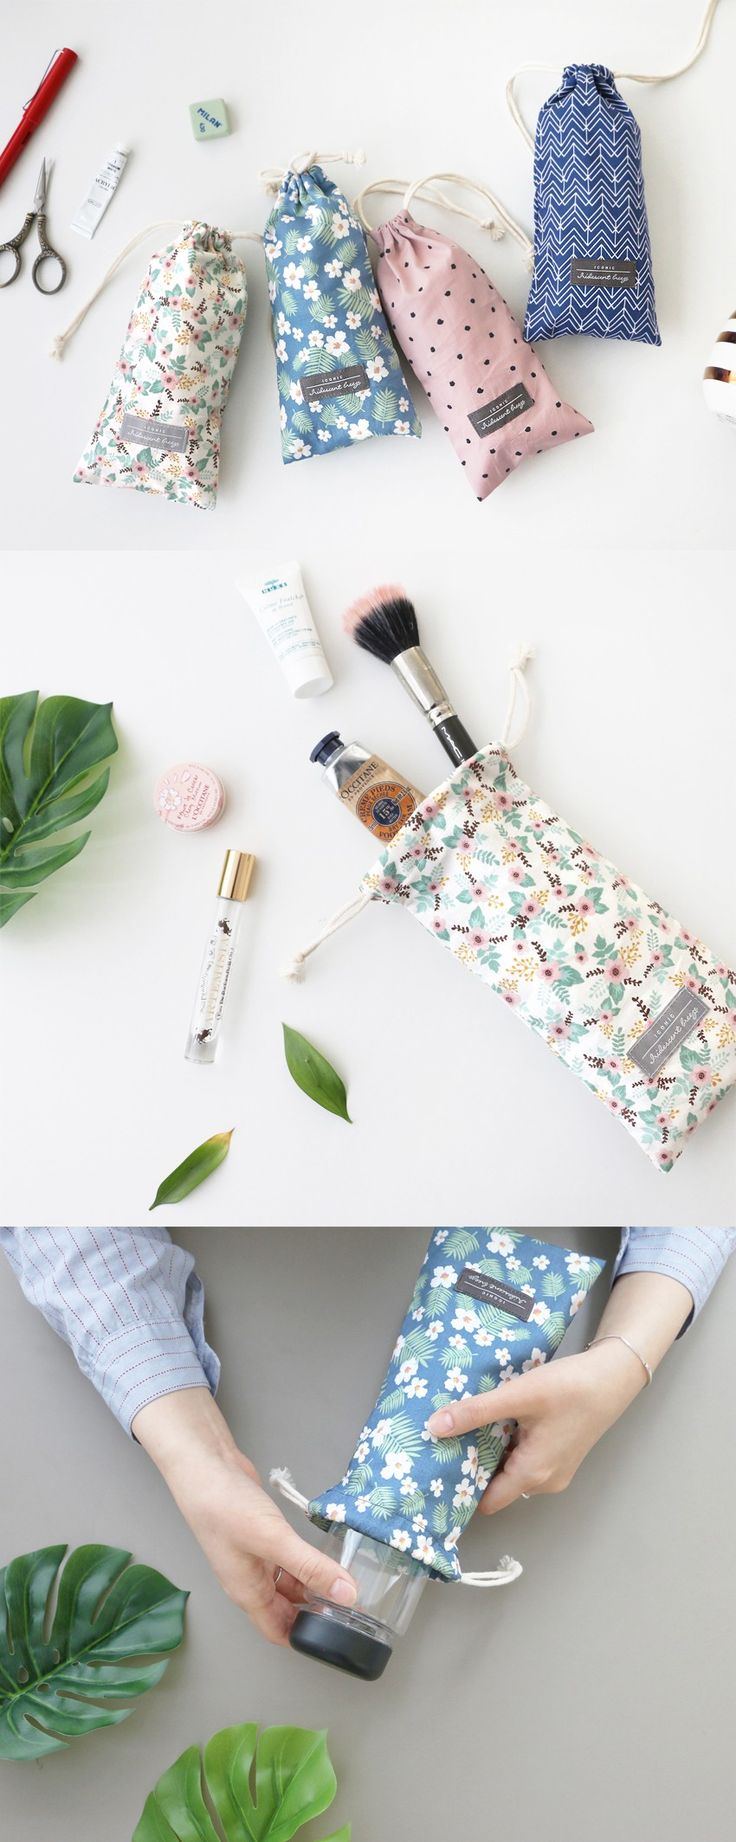 Your sunglasses might want a prettier house like the Comely Long Drawstring Pouch! With its long shape, you can store long shape items like glasses, toothbrushes, pens and even water bottles in this lovely pouch.